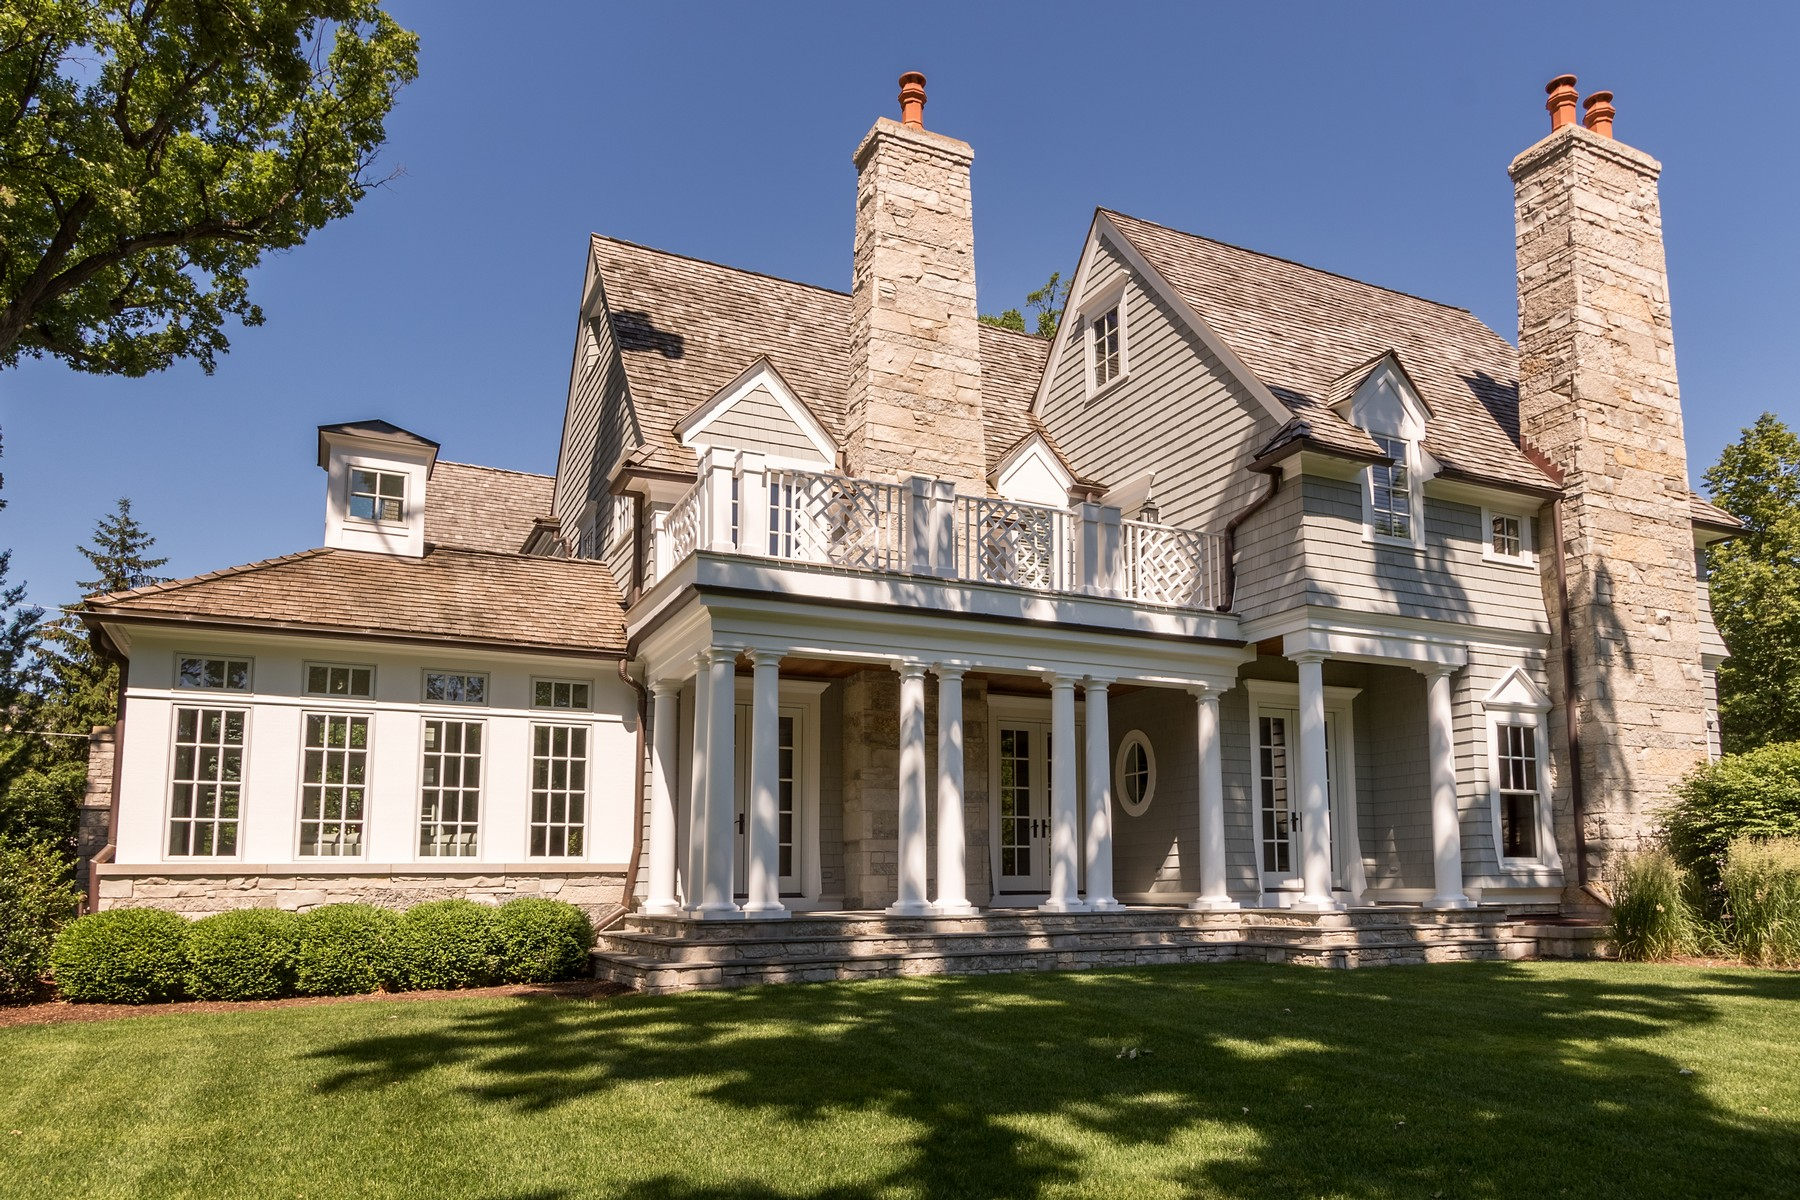 Additional photo for property listing at 318 Hillcrest Avenue  Hinsdale, Illinois 60521 United States